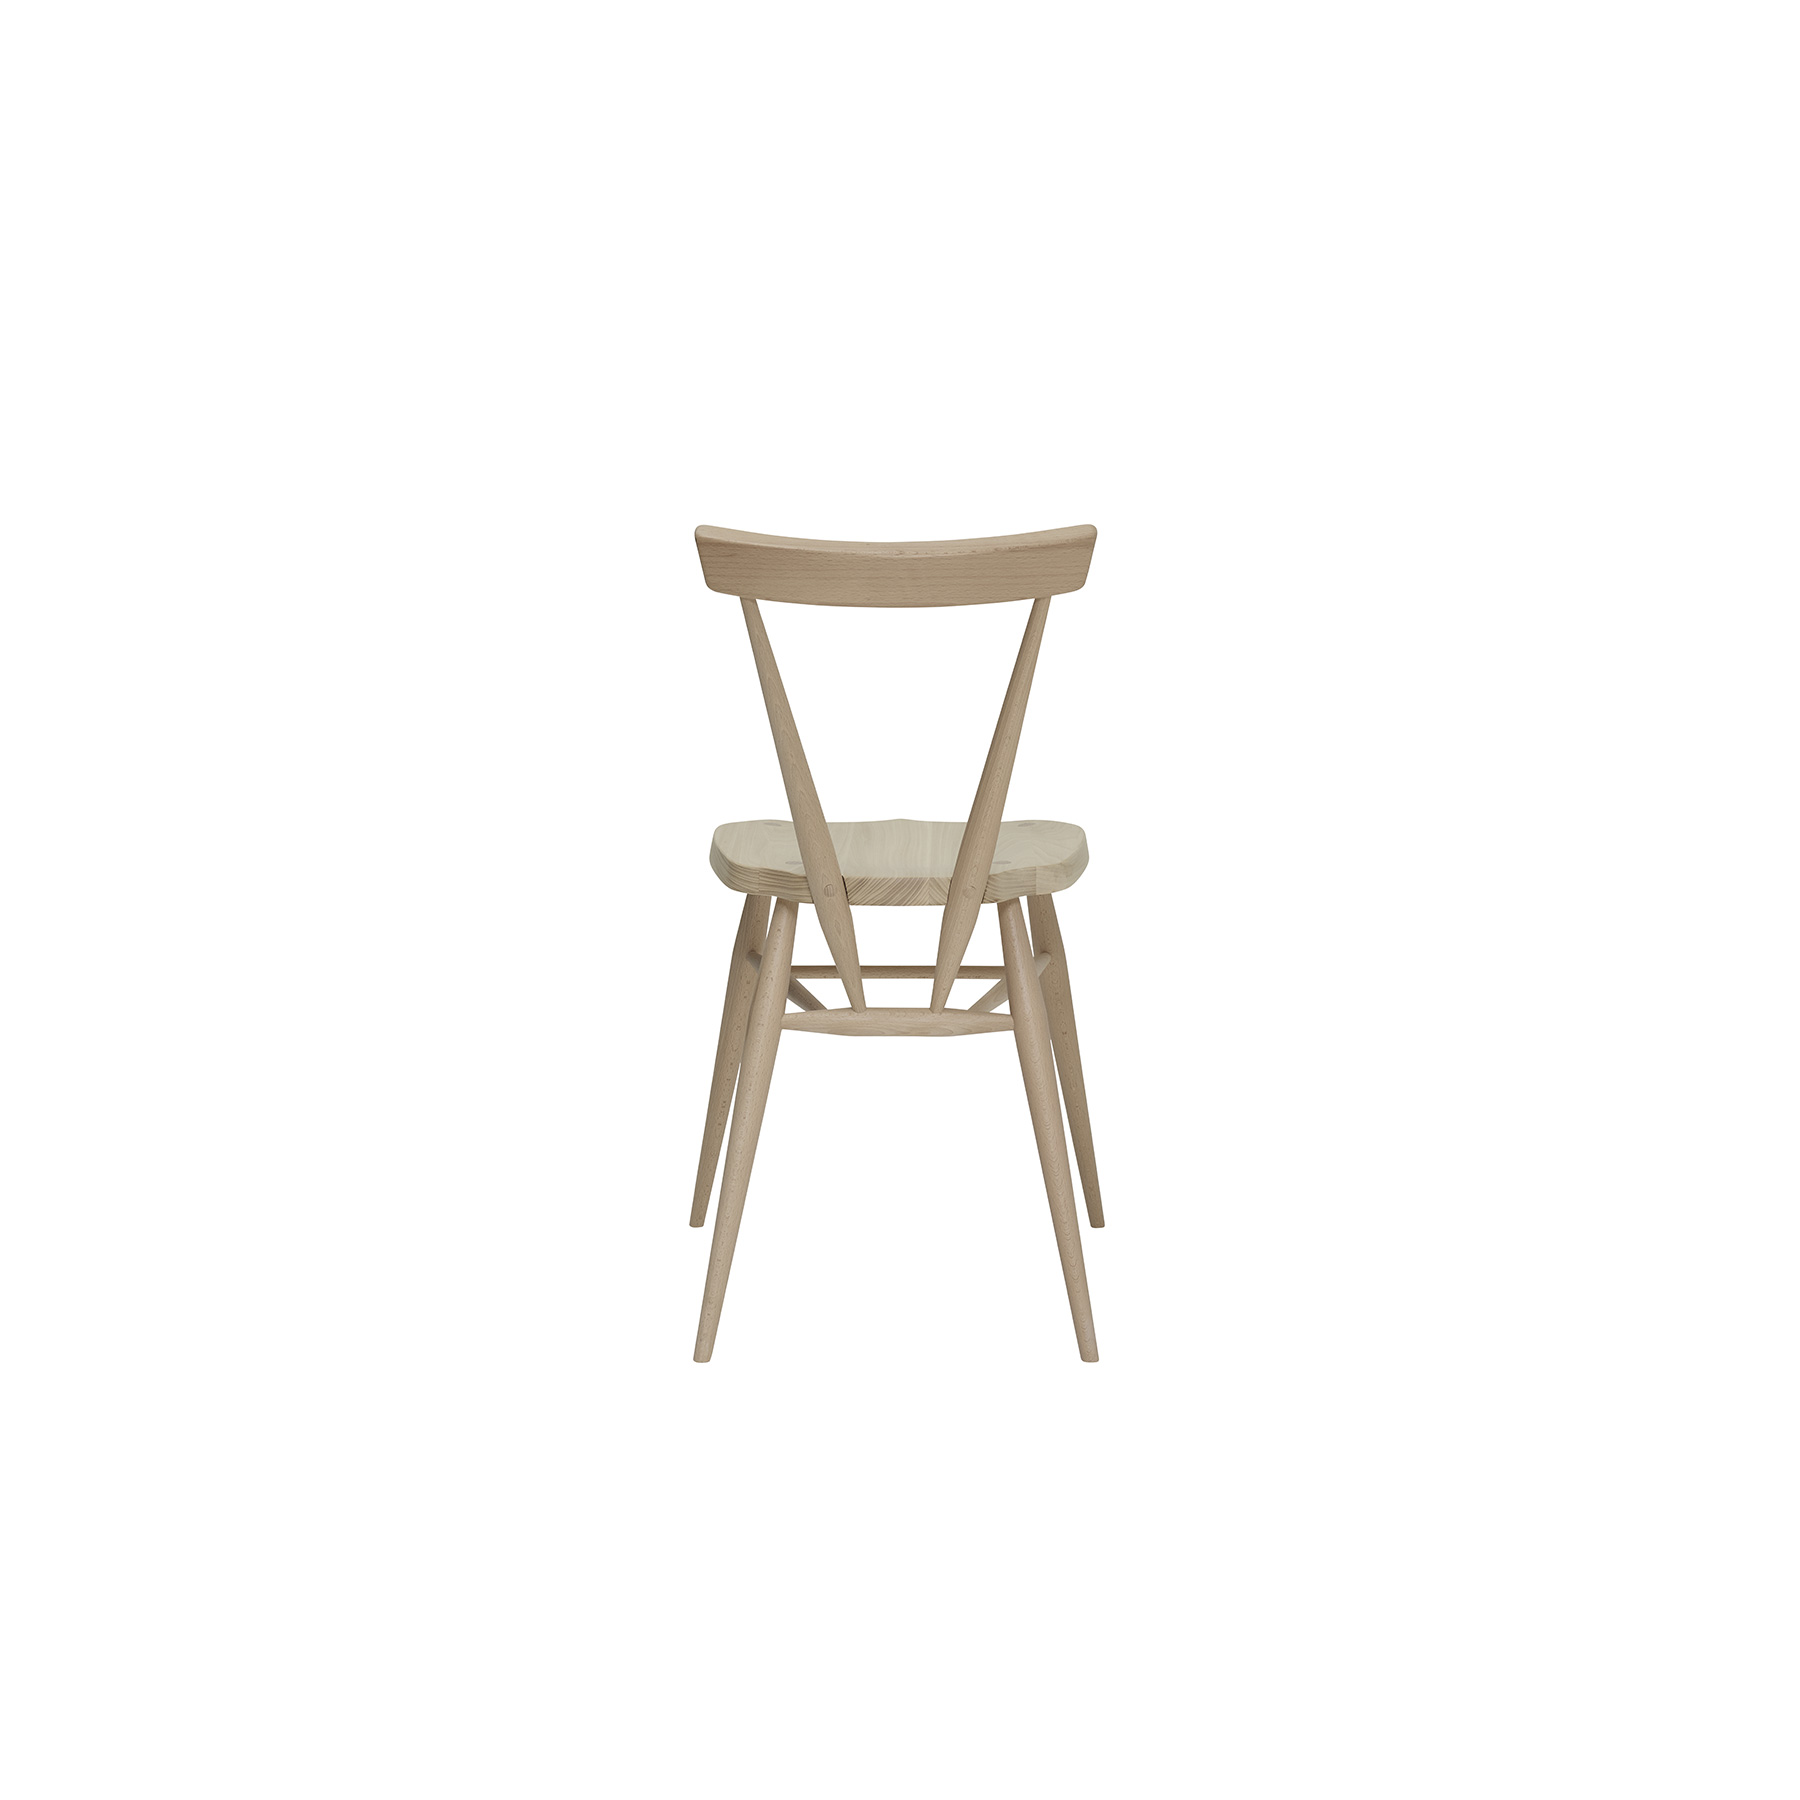 Originals Stacking Chair - <p>The Ercol Originals are pieces of timeless and classic design that never date or show their age. It is furniture that is as relevant and as functional now as it was when it was created in the 1950s and 1960s. This furniture was designed by ercol's founder, Lucian Ercolani, who drew for his inspiration on the time proven local design and craft in the Chiltern Hills around where he lived and built his first factory in 1920 in High Wycombe. Using the strength of beech and the beauty of elm he carried this definition on into a huge variety of dining, kitchen, and school chairs and then extended the idiom into the low easy chair range epitomised by the 206 armchair and the studio couch. The beauty of the colour and the grain of the elm took Lucian on to use elm for the tables and cabinets of the Originals and the following Windsor range. The outward facing, tapered legs on these chairs mean that they stack vertically when they are not in use, combining versatility and style. The curved horizontal seat back not only looks good but also provides a supportive sit, combined with the moulded sturdy ash seat. A feature of this dining chair is the classic Windsor wedge joint, where the leg of the chair goes right through the seat; a wedge is then inserted into a cut in the leg, forming a remarkably strong joint.  Sanded off flush with the seat, the joint then provides a beautiful design element. First launched in 1957, the stacking chair is as fresh today as it was then. The stacking chair will be finished in your choice of a range of lacquer finishes or in a choice of our painted colour finishes, which protects the timber as well as fitting in with your style and decor. </p>